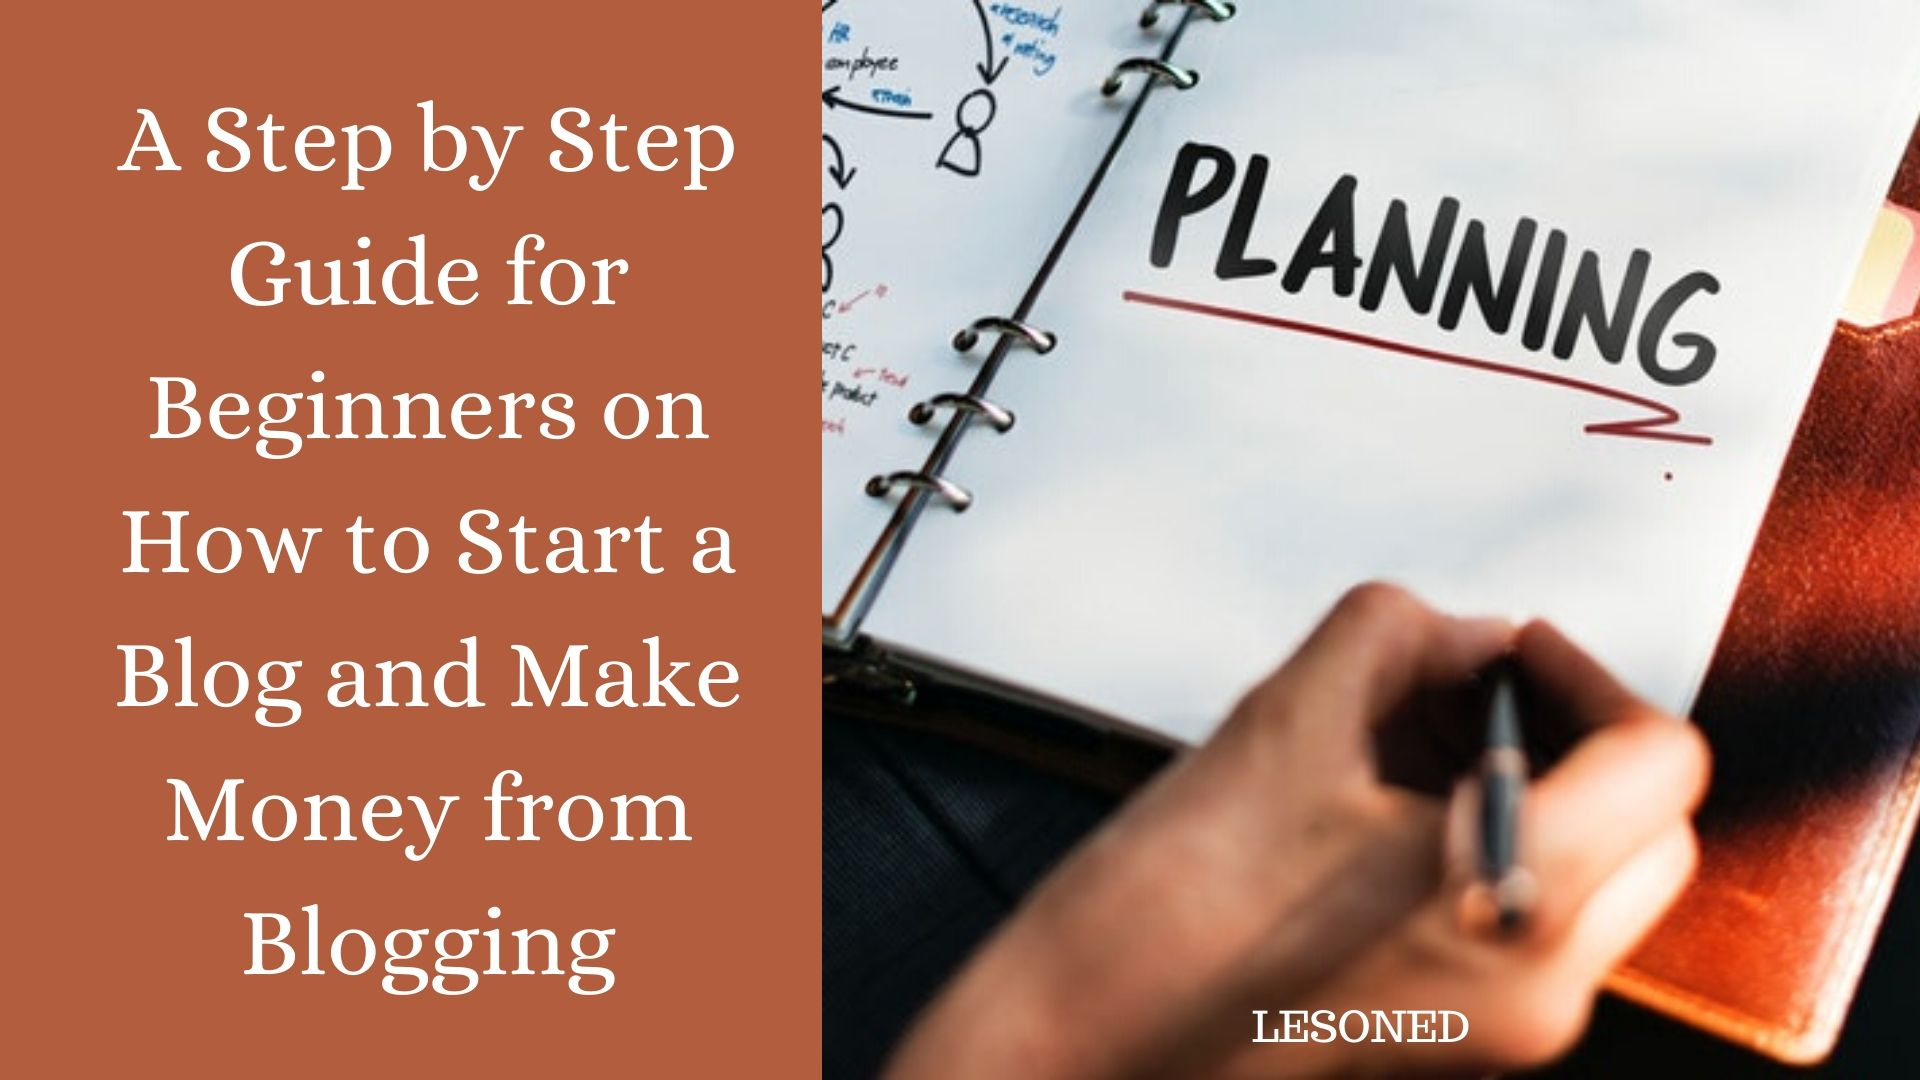 A Step by Step Guide for Beginners on How to Start a Blog and Make Money from Blogging